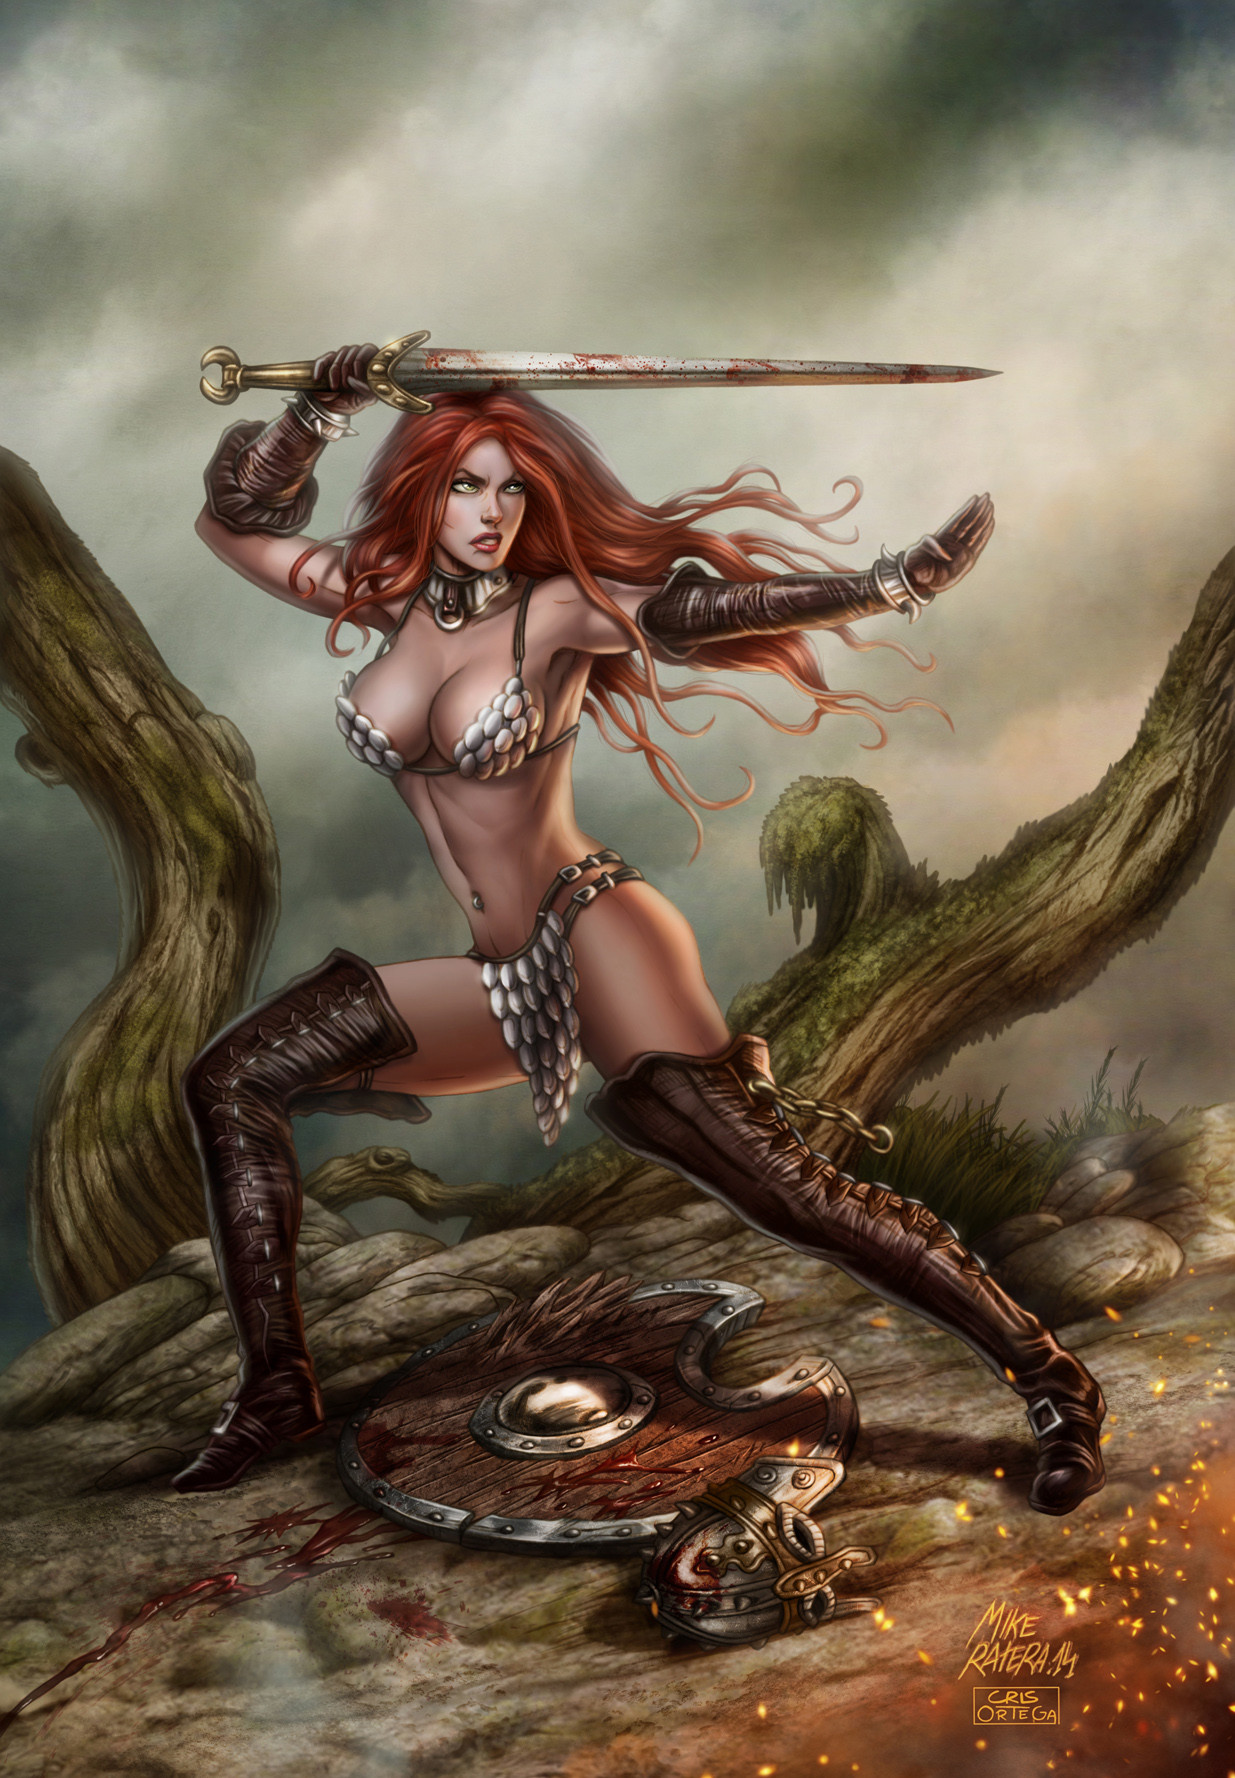 Mike ratera red sonja 14 color